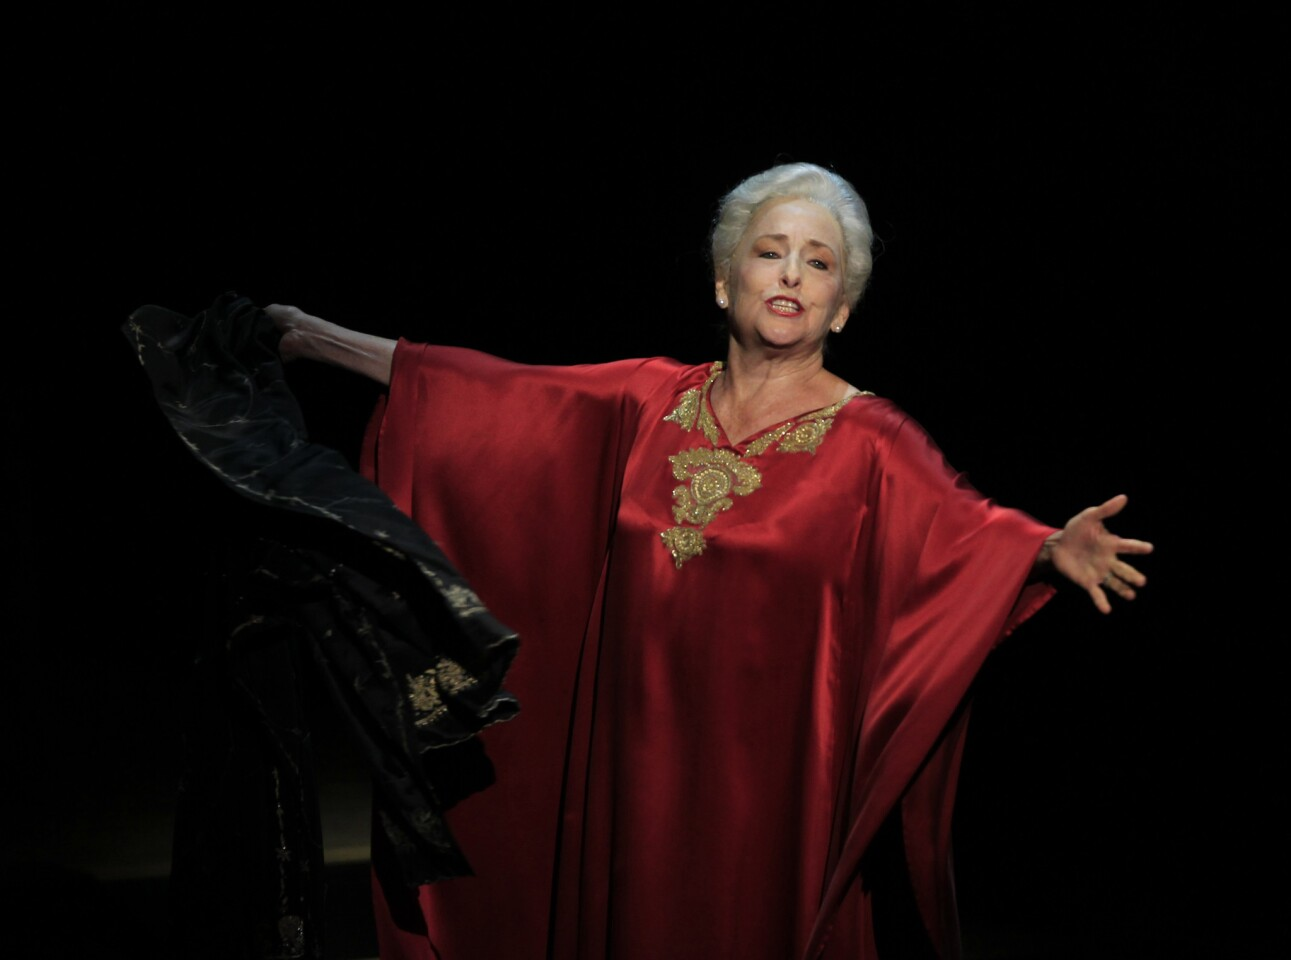 """Mezzo-soprano Frederica von Stade performs Ricky Ian Gordon's """"A Coffin in Egypt,"""" which the composer wrote for her, at the Wallis Annenberg Center for the Performing Arts in Beverly Hills."""